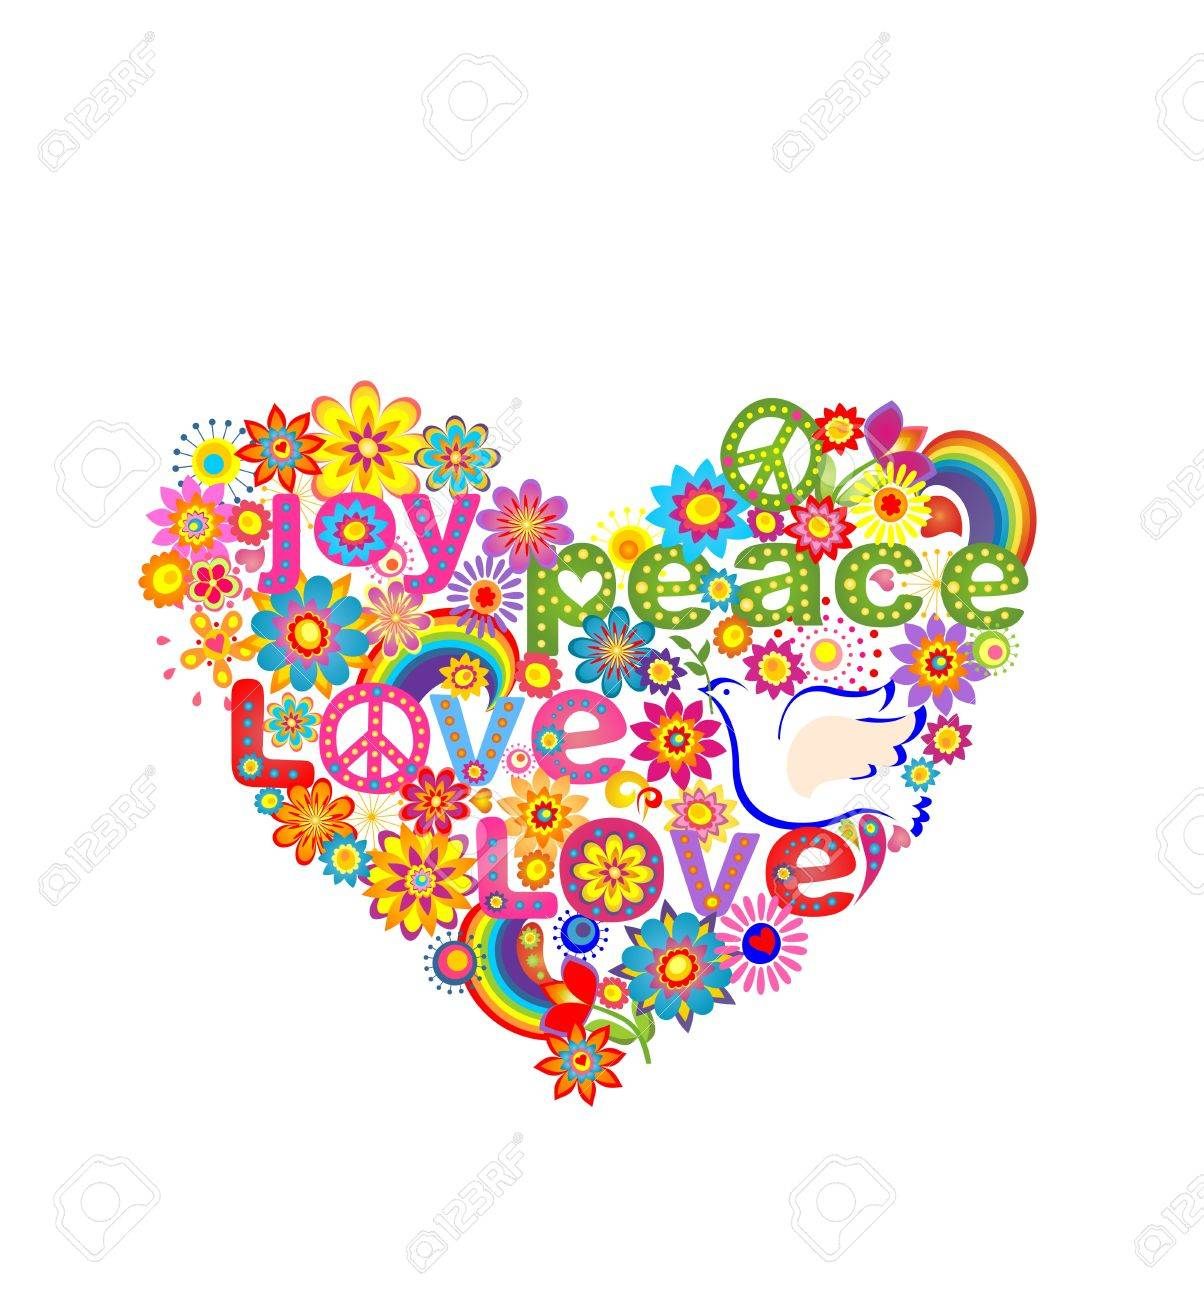 Hippie Heart Print With Dove Peace Symbol And Rainbow Royalty Free